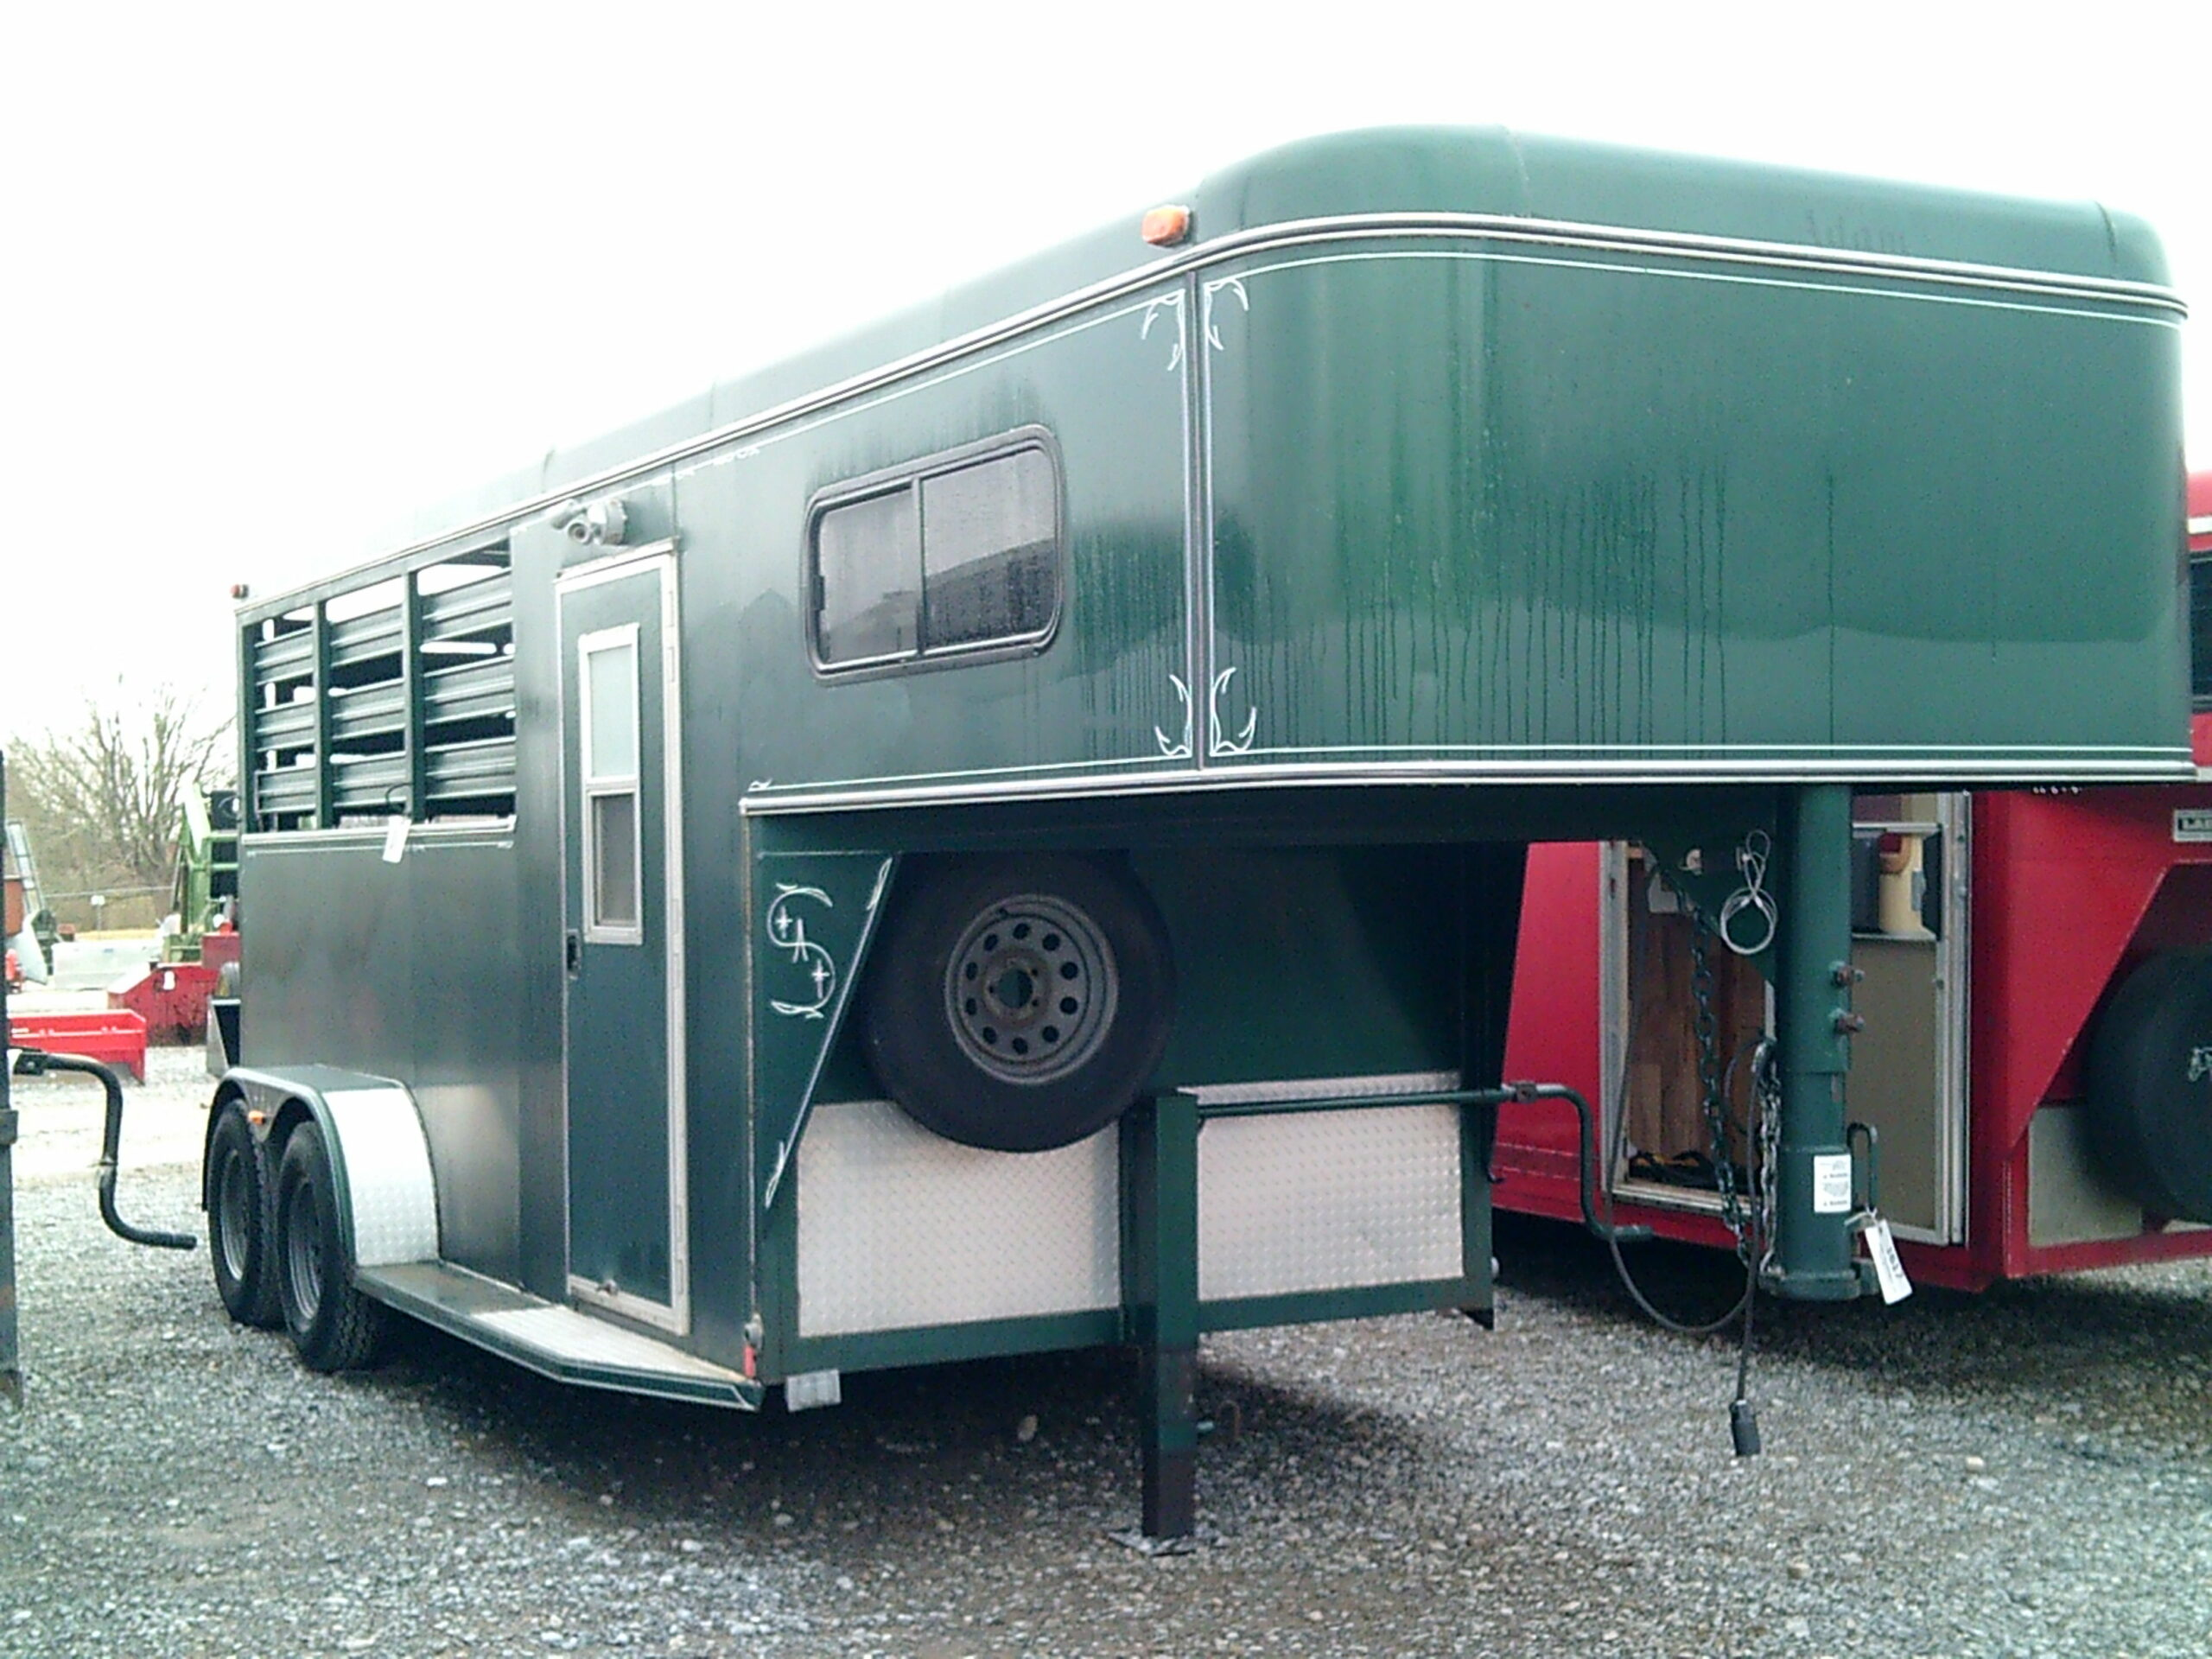 GREEN HORSE TRAILER 16 FOOT Image